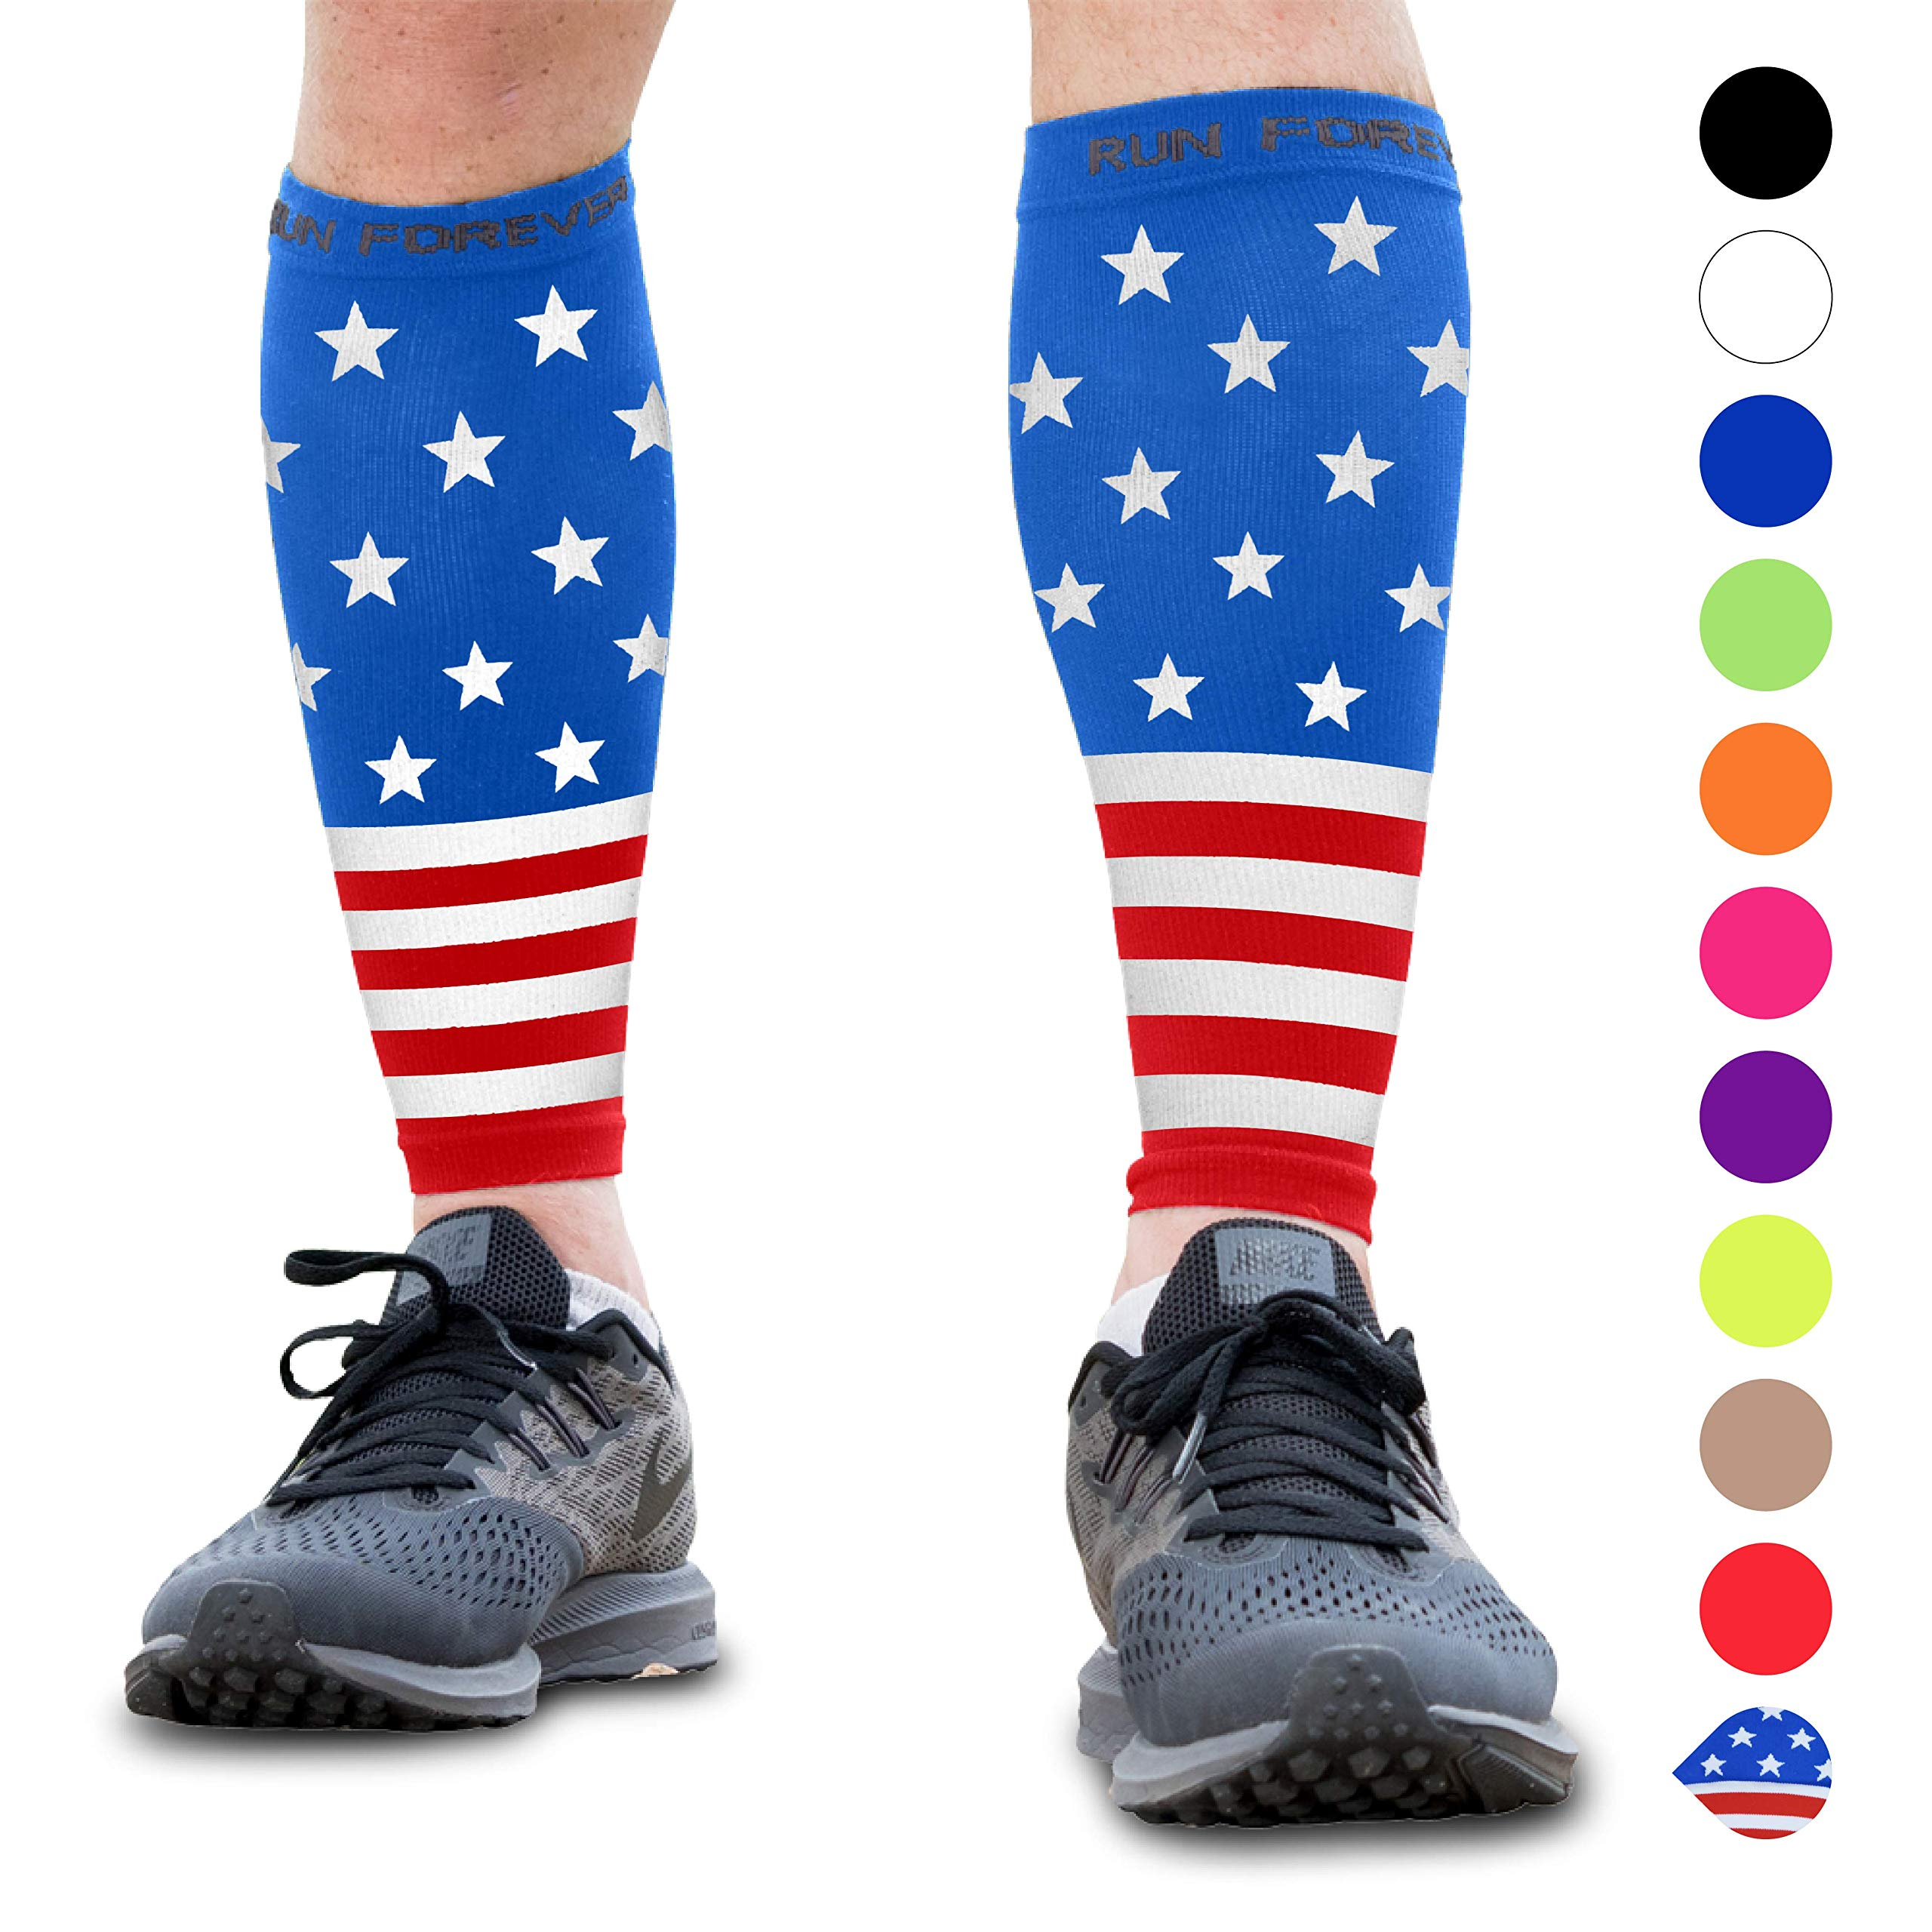 Calf Compression Sleeve - Leg Compression Socks for Shin Splint, Calf Pain Relief - Men, Women, and Runners - Calf Guard for Running, Cycling, Maternity, Travel, Nurses (American Flag, XL) by Run Forever Sports